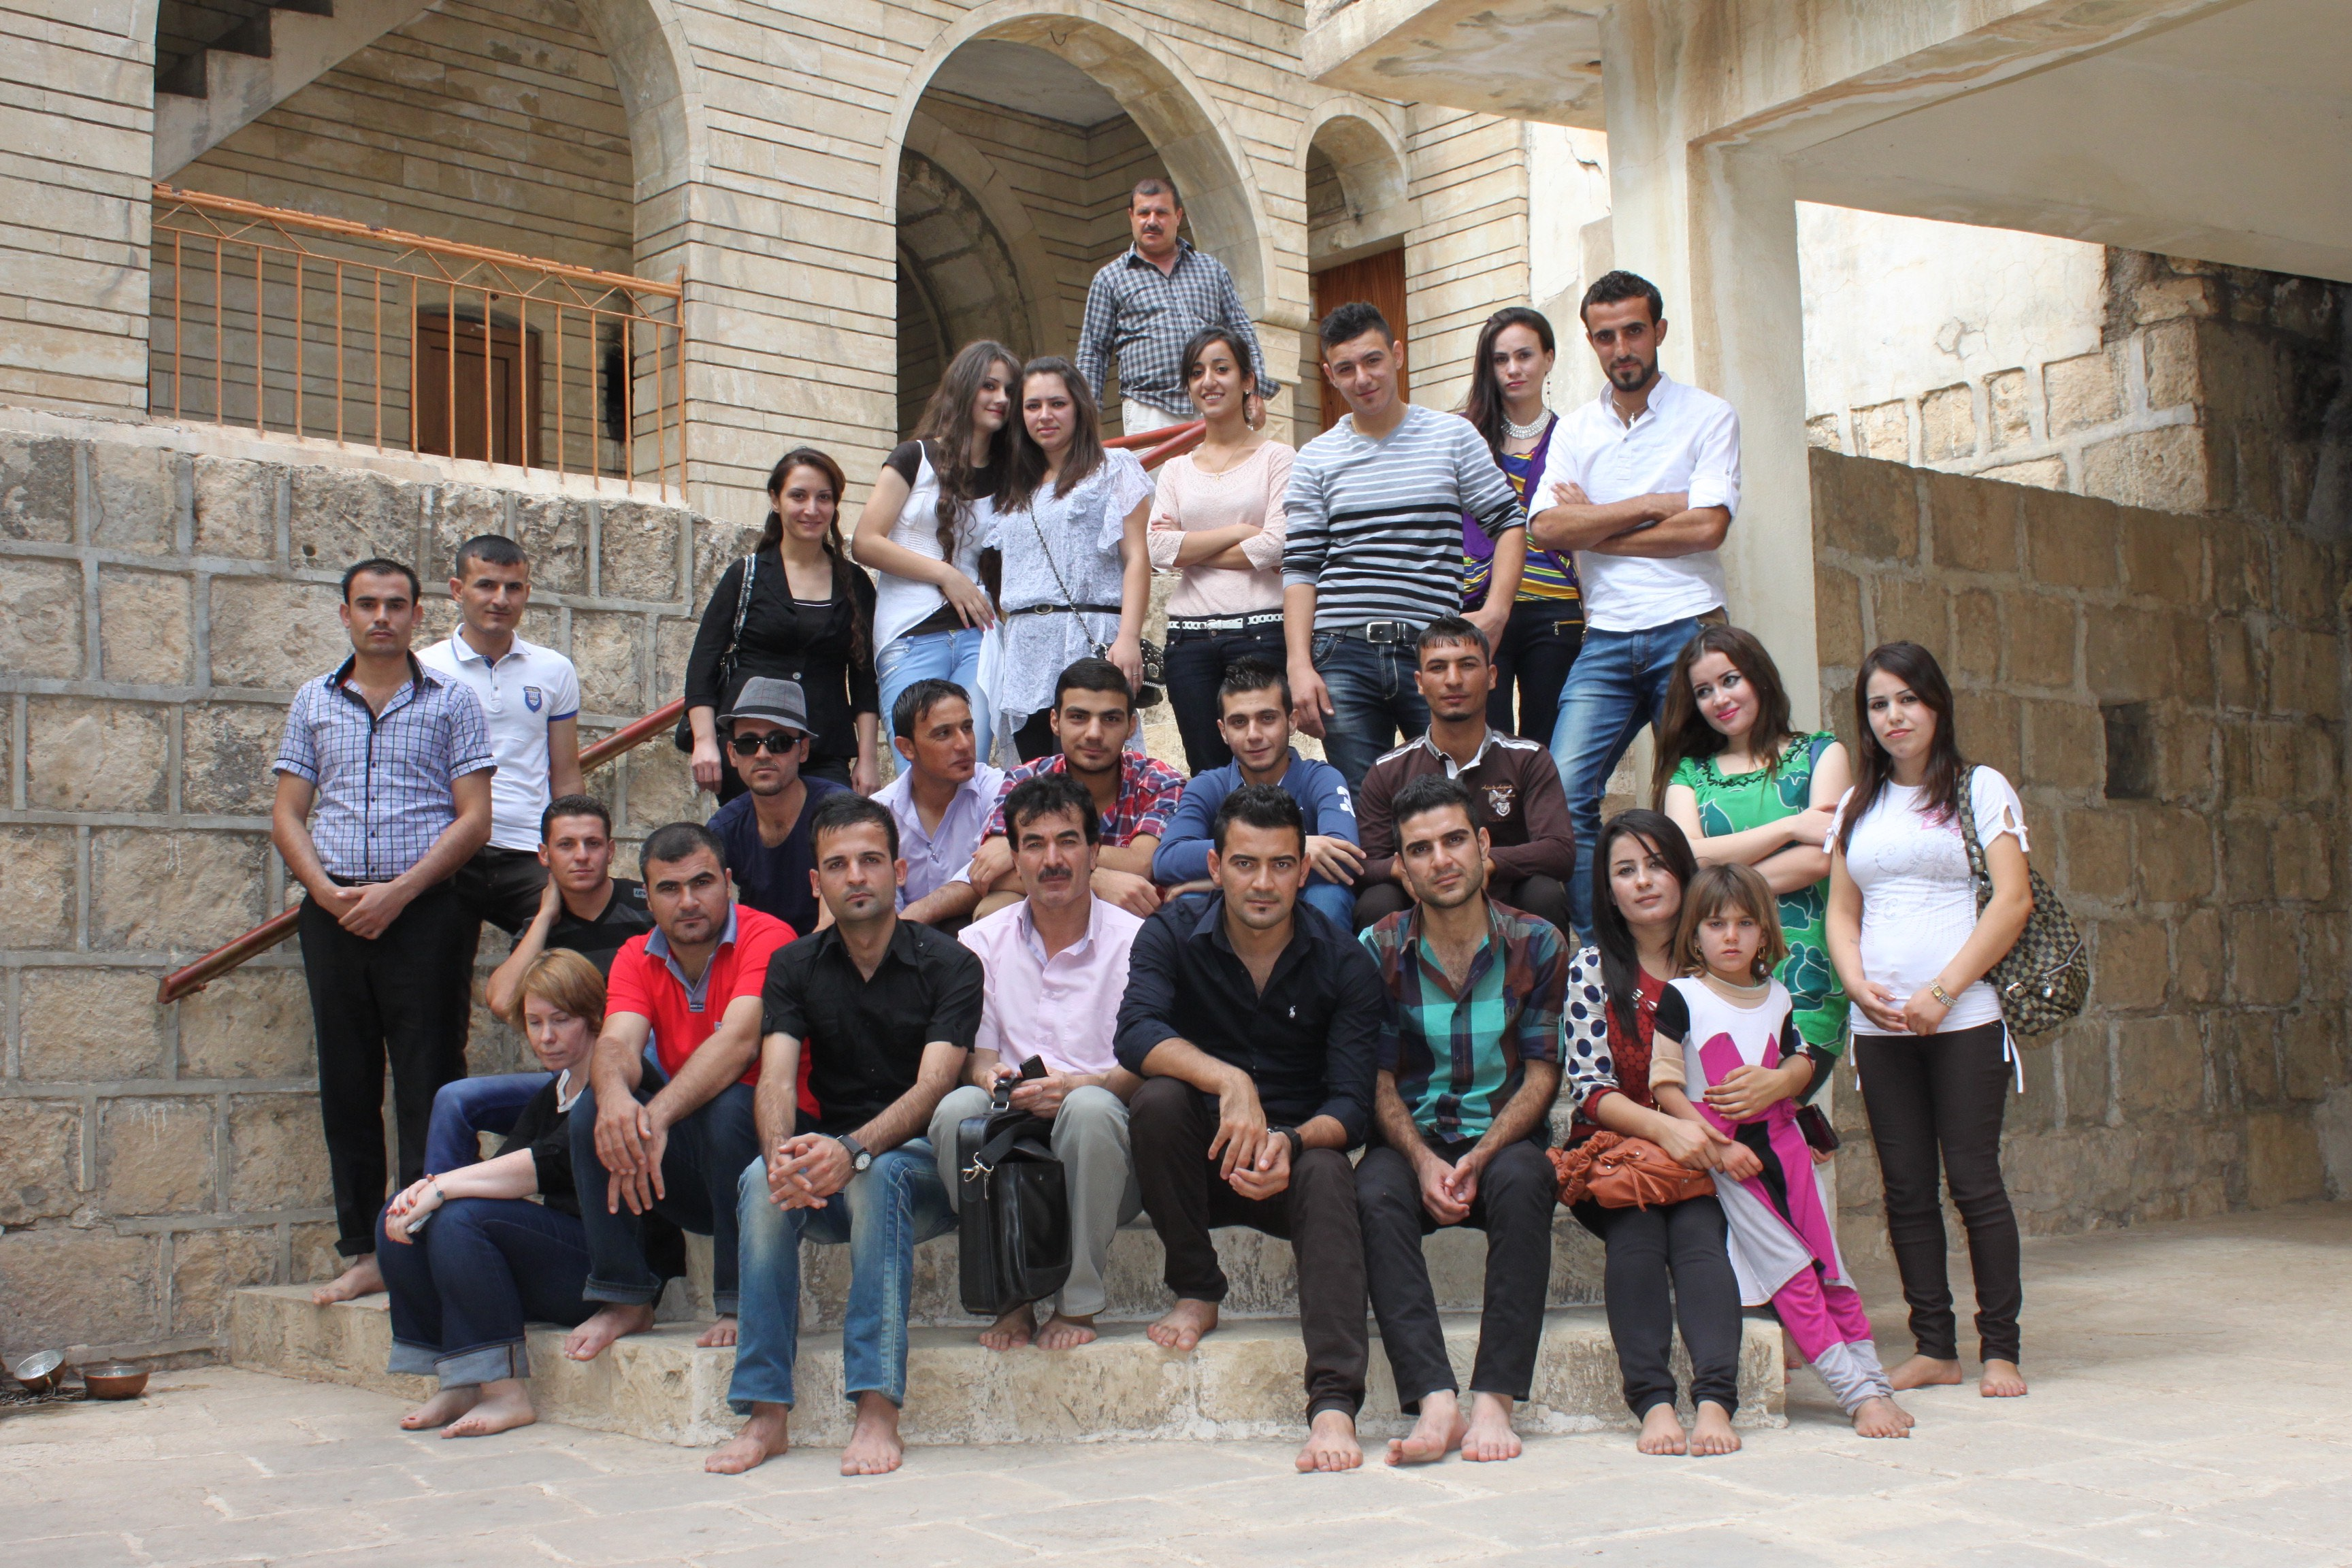 The Kullina Muwatanin youth group visits Lalish Temple - a key place of worship for Yazidis. The temple is 50km north of Mosul in Dohuk Governorate. Picture taken October 2013